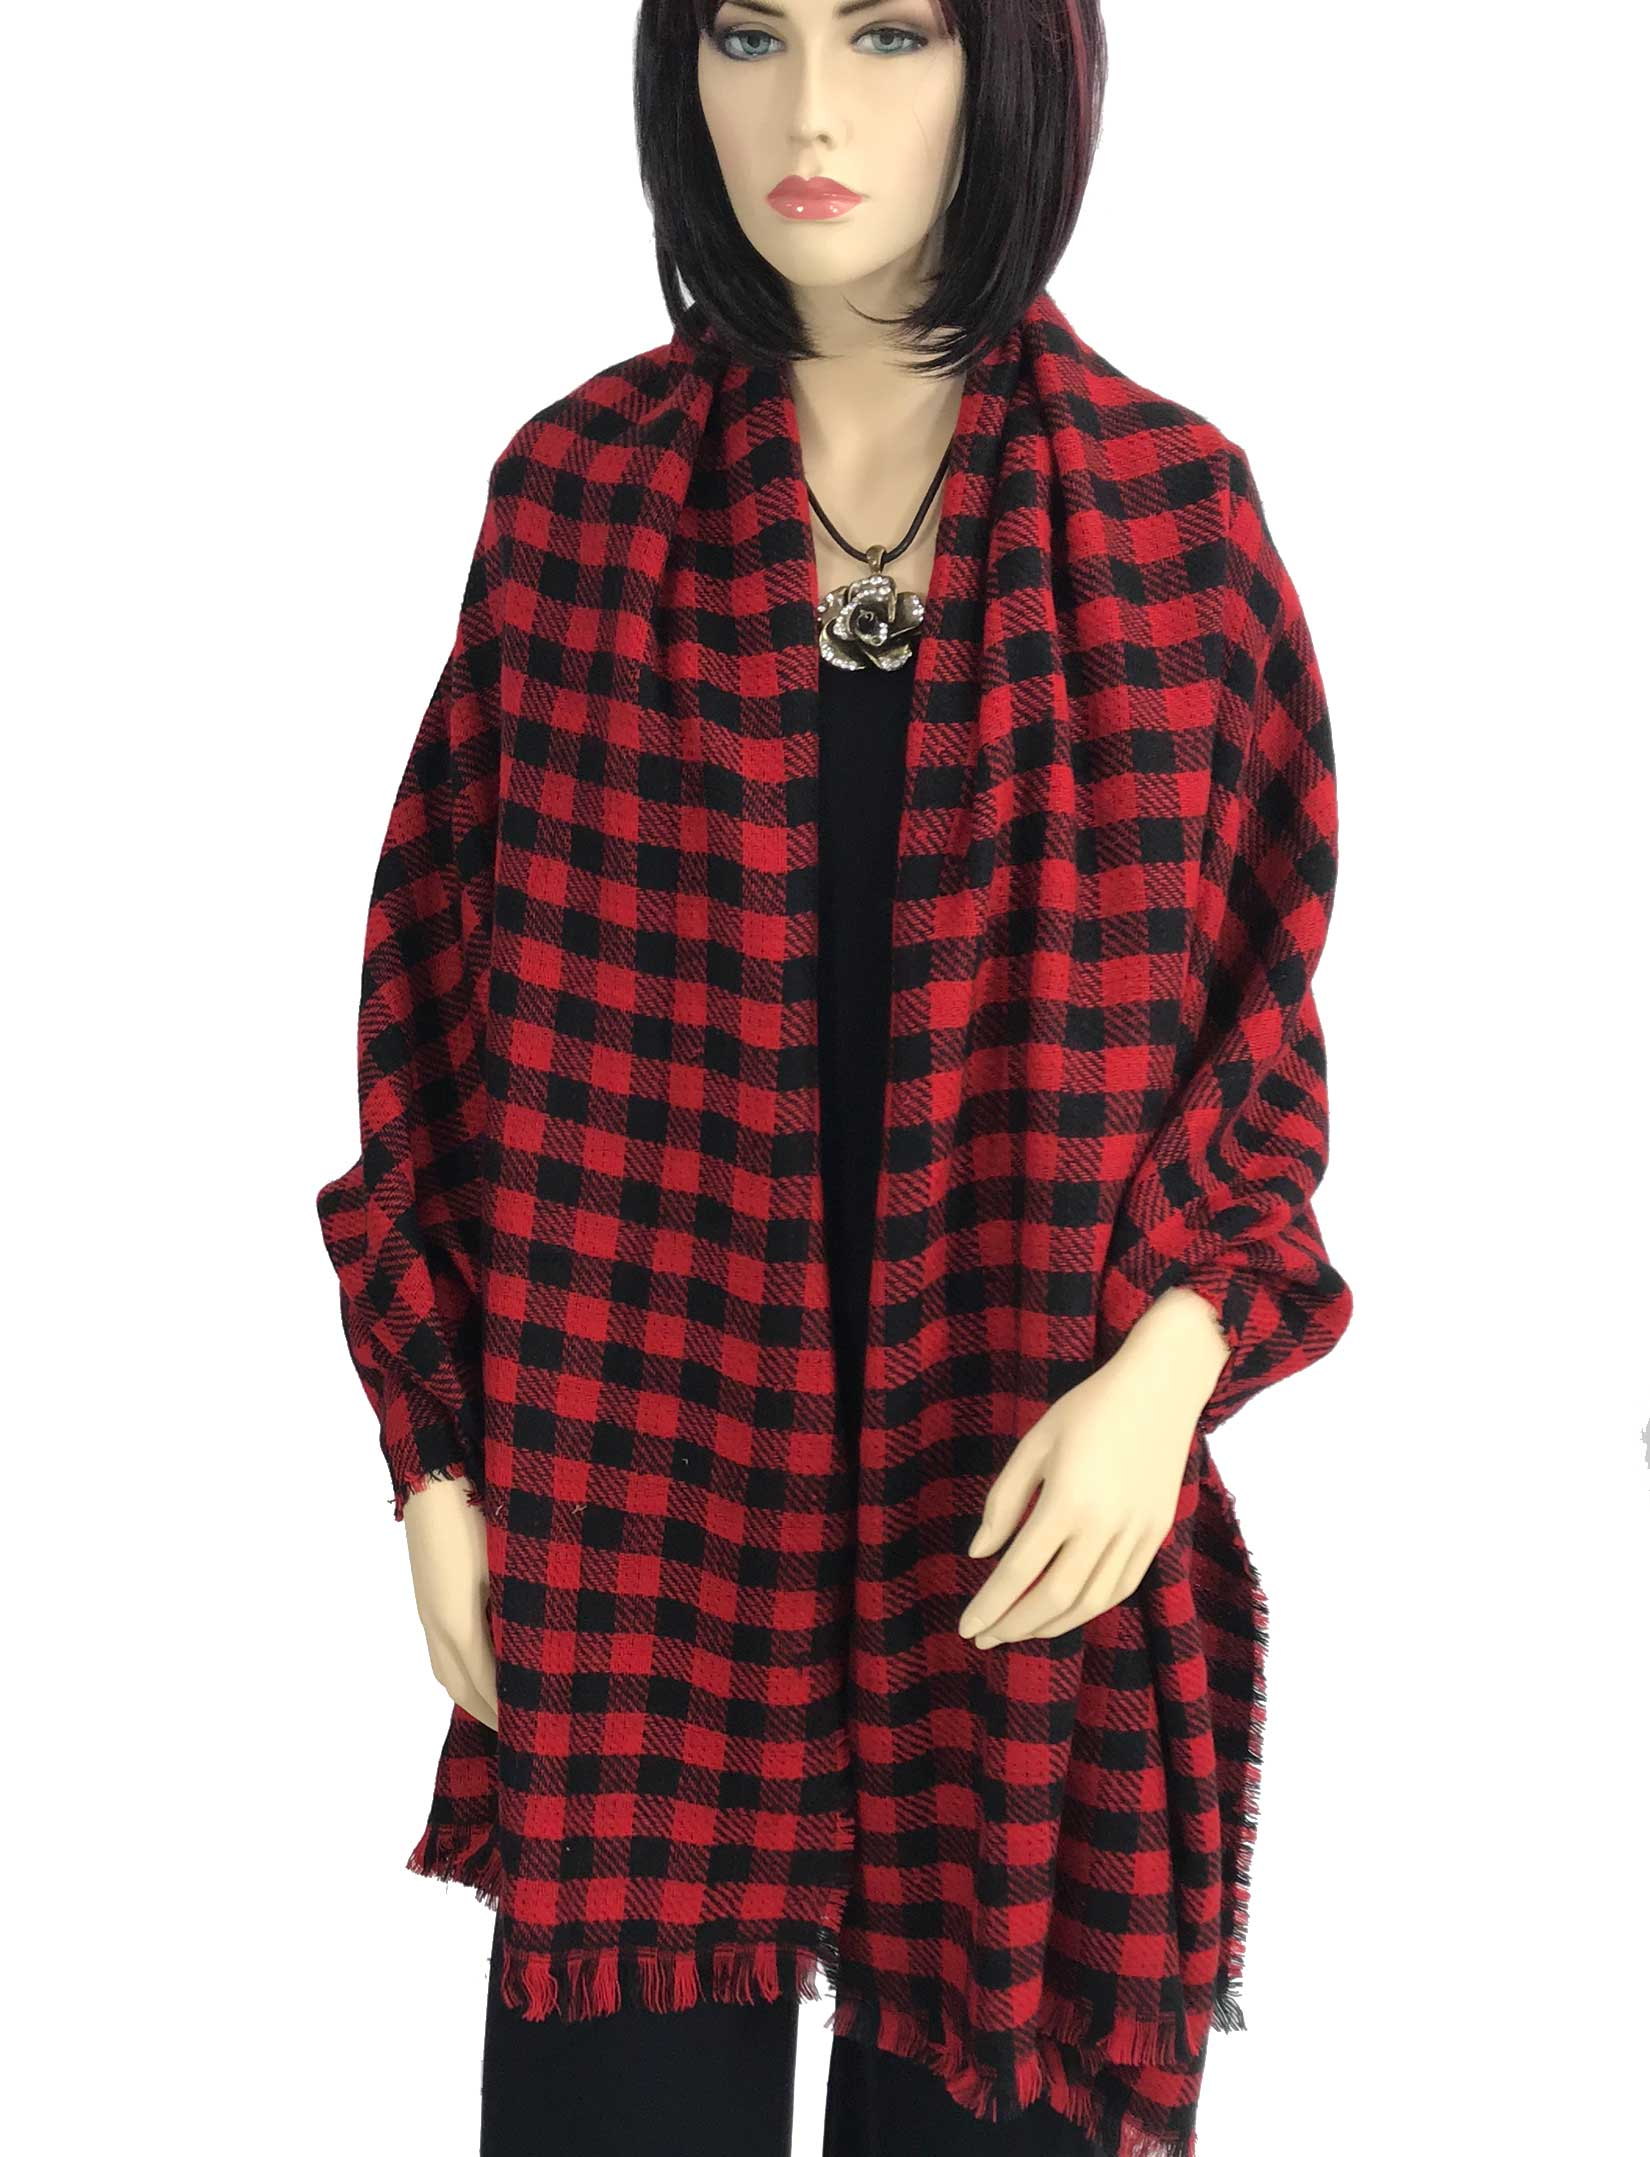 wholesale Oblong Scarves/Shawls - Buffalo Check 9088*